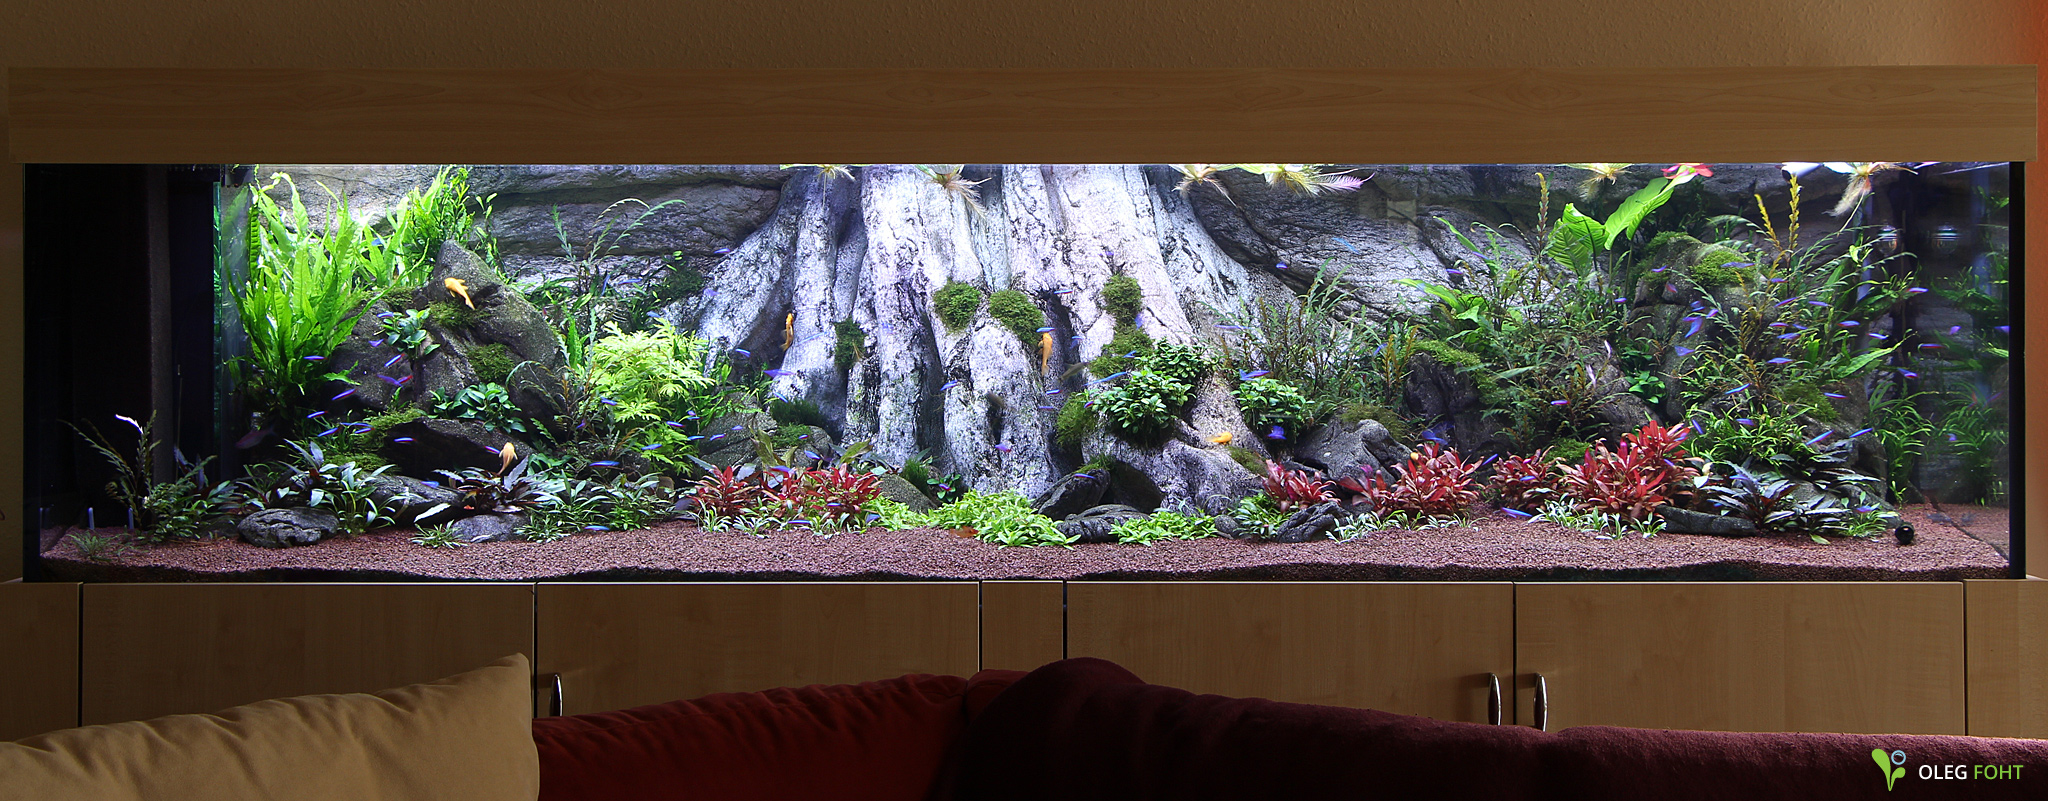 Amazonas XL in het enorme aquarium